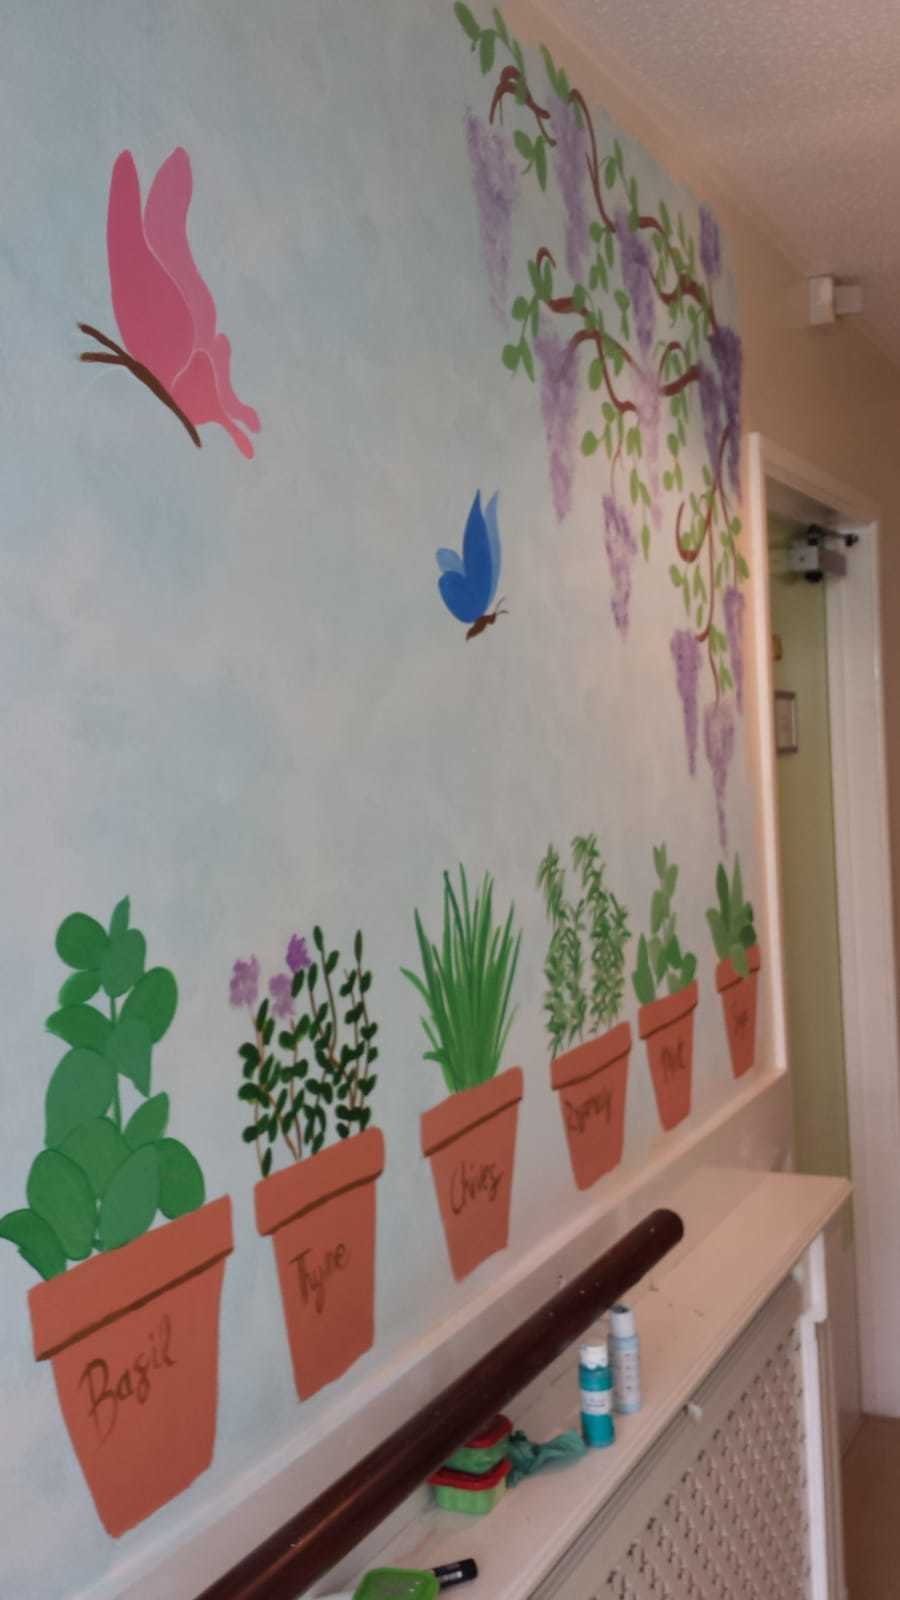 A mural leading outside at Thistle Court care home in Cwmbran, painted by staff member Rachel Davies. Picture: Thistle Court Care Home